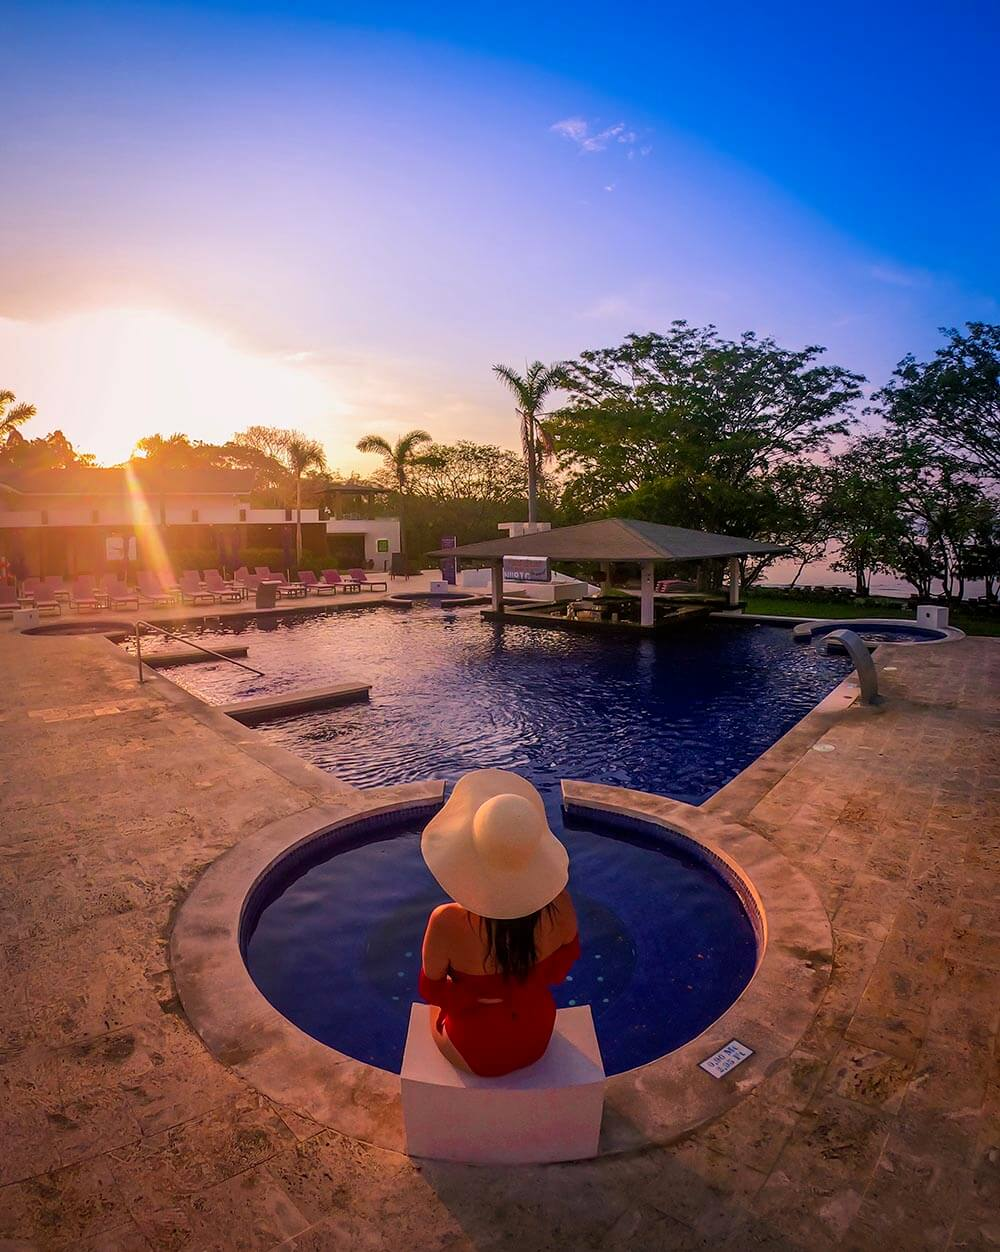 planet hollywood costa rica review girl with hat sitting on side of pool at sunrise